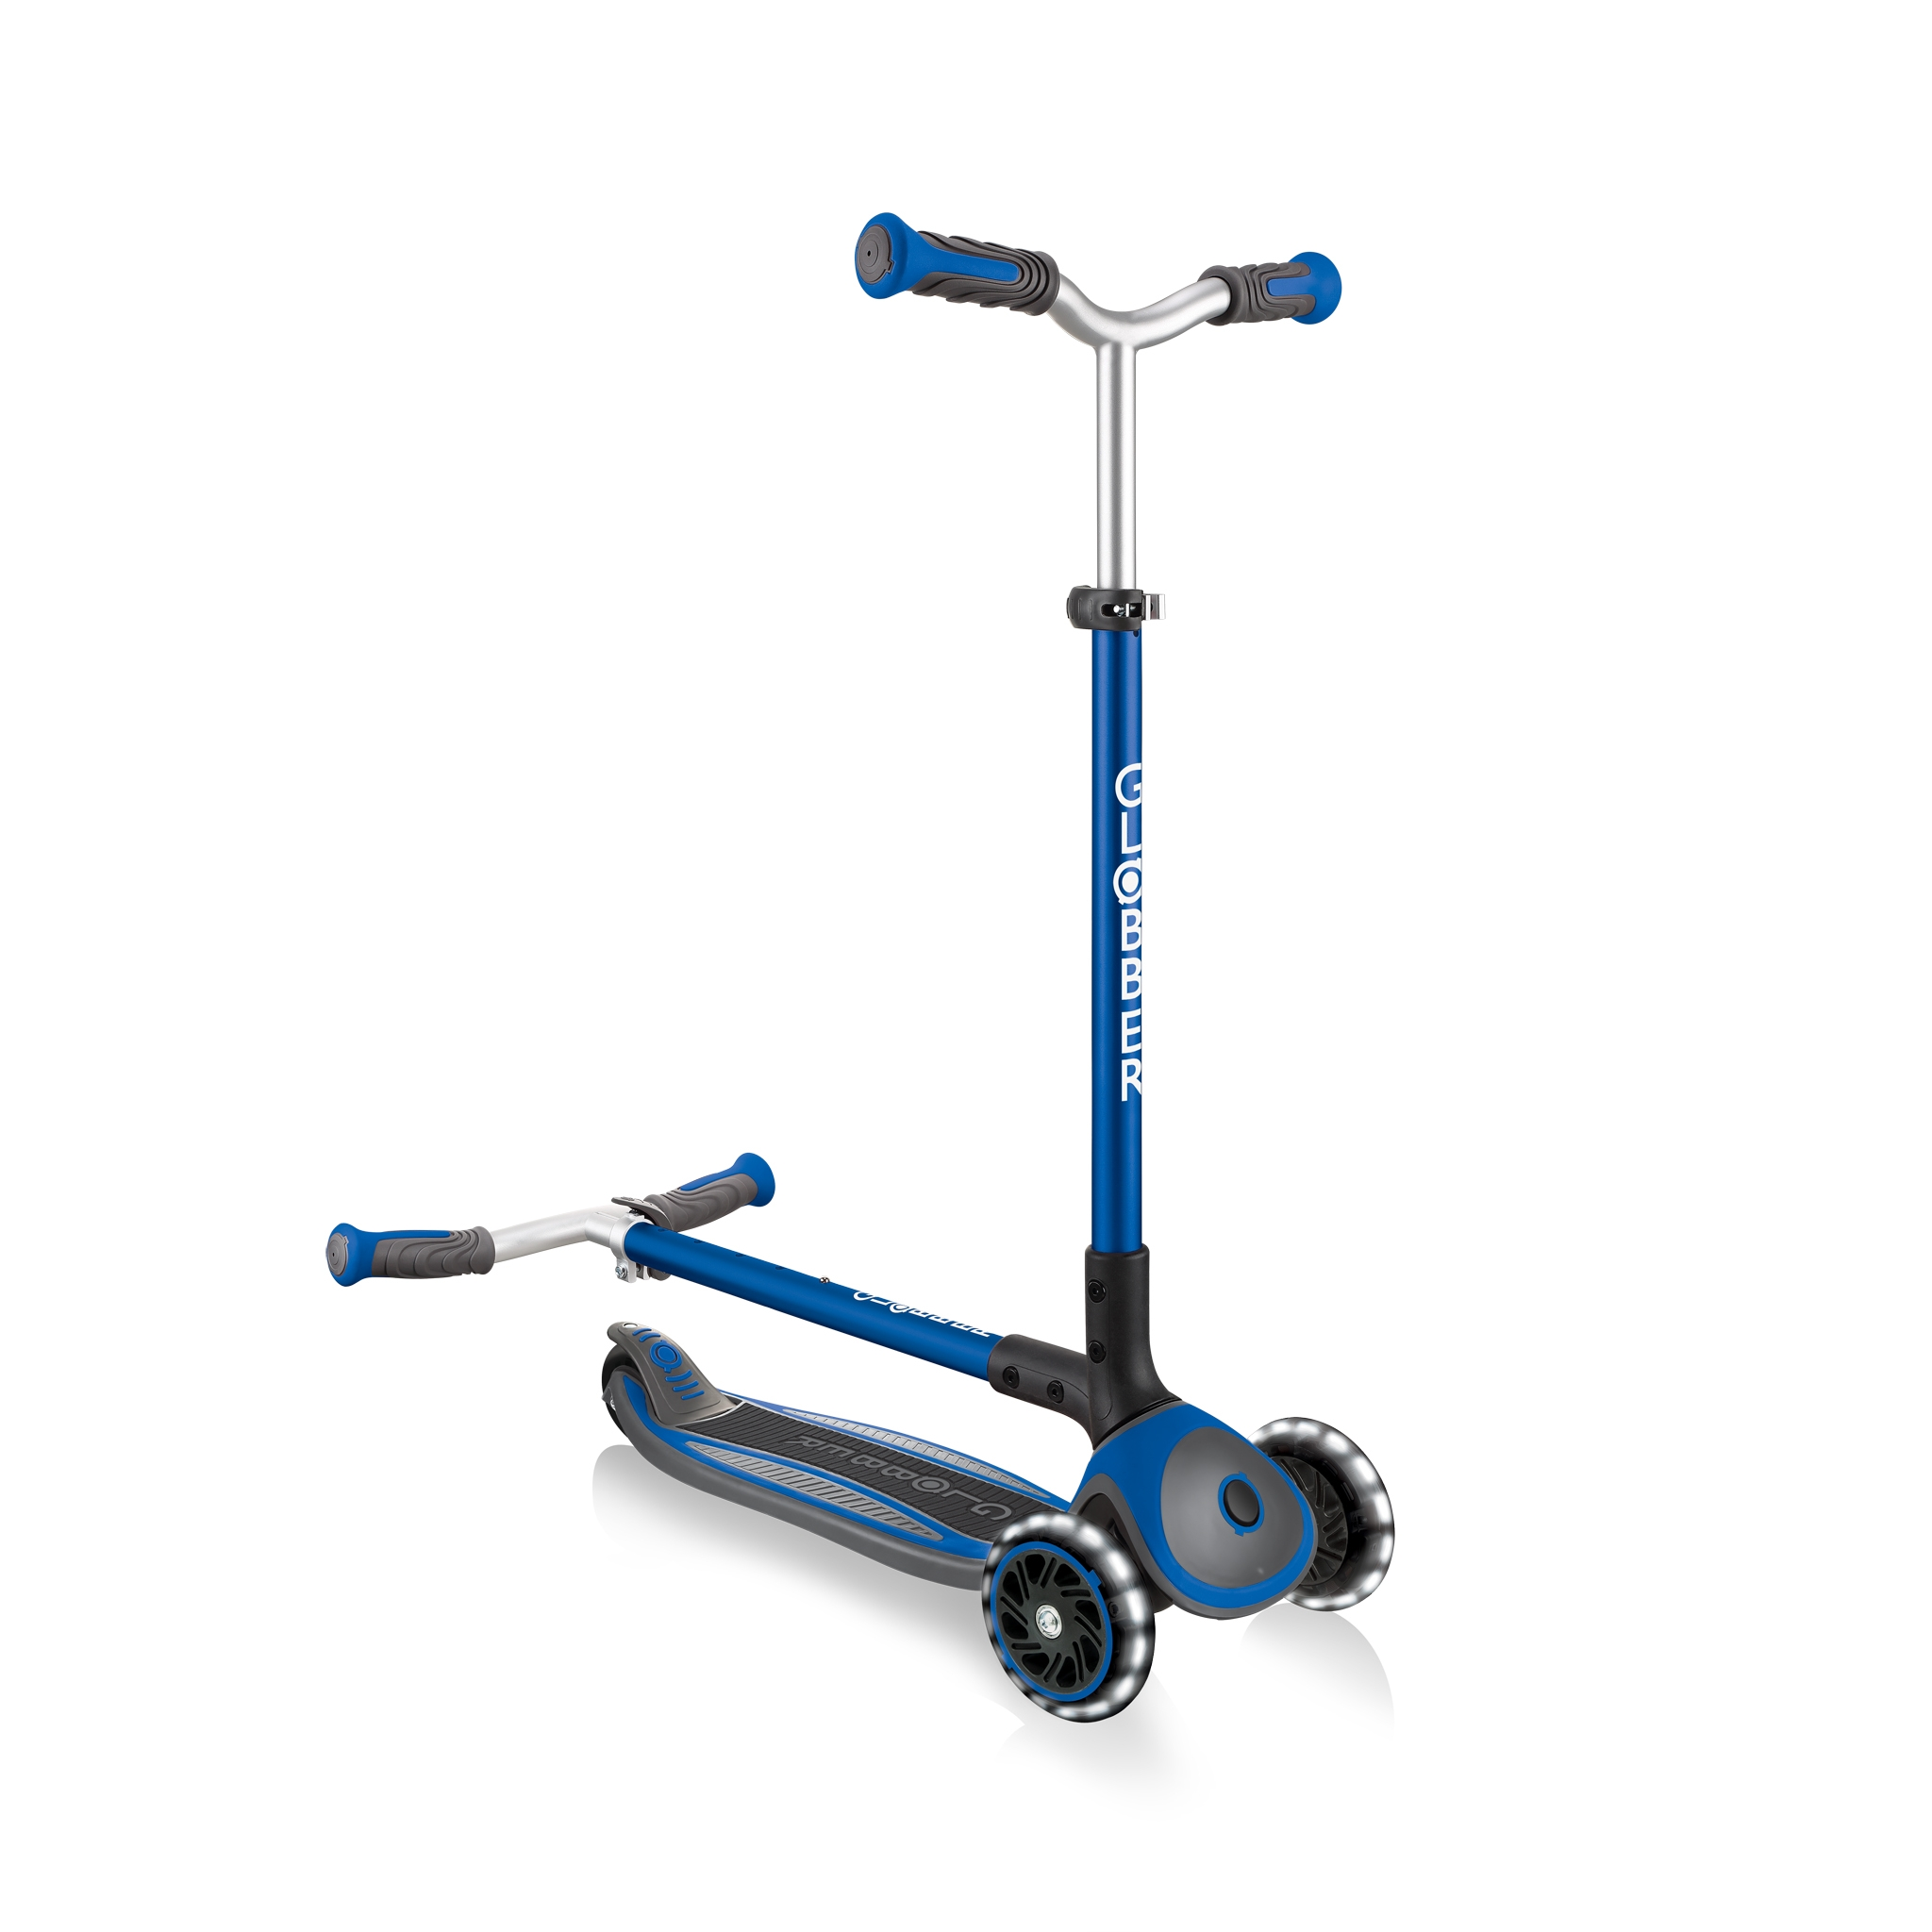 Globber-MASTER-LIGHTS-convenient-foldable-3-wheel-light-up-scooter-for-kids-with-patented-folding-system_dark-blue 3